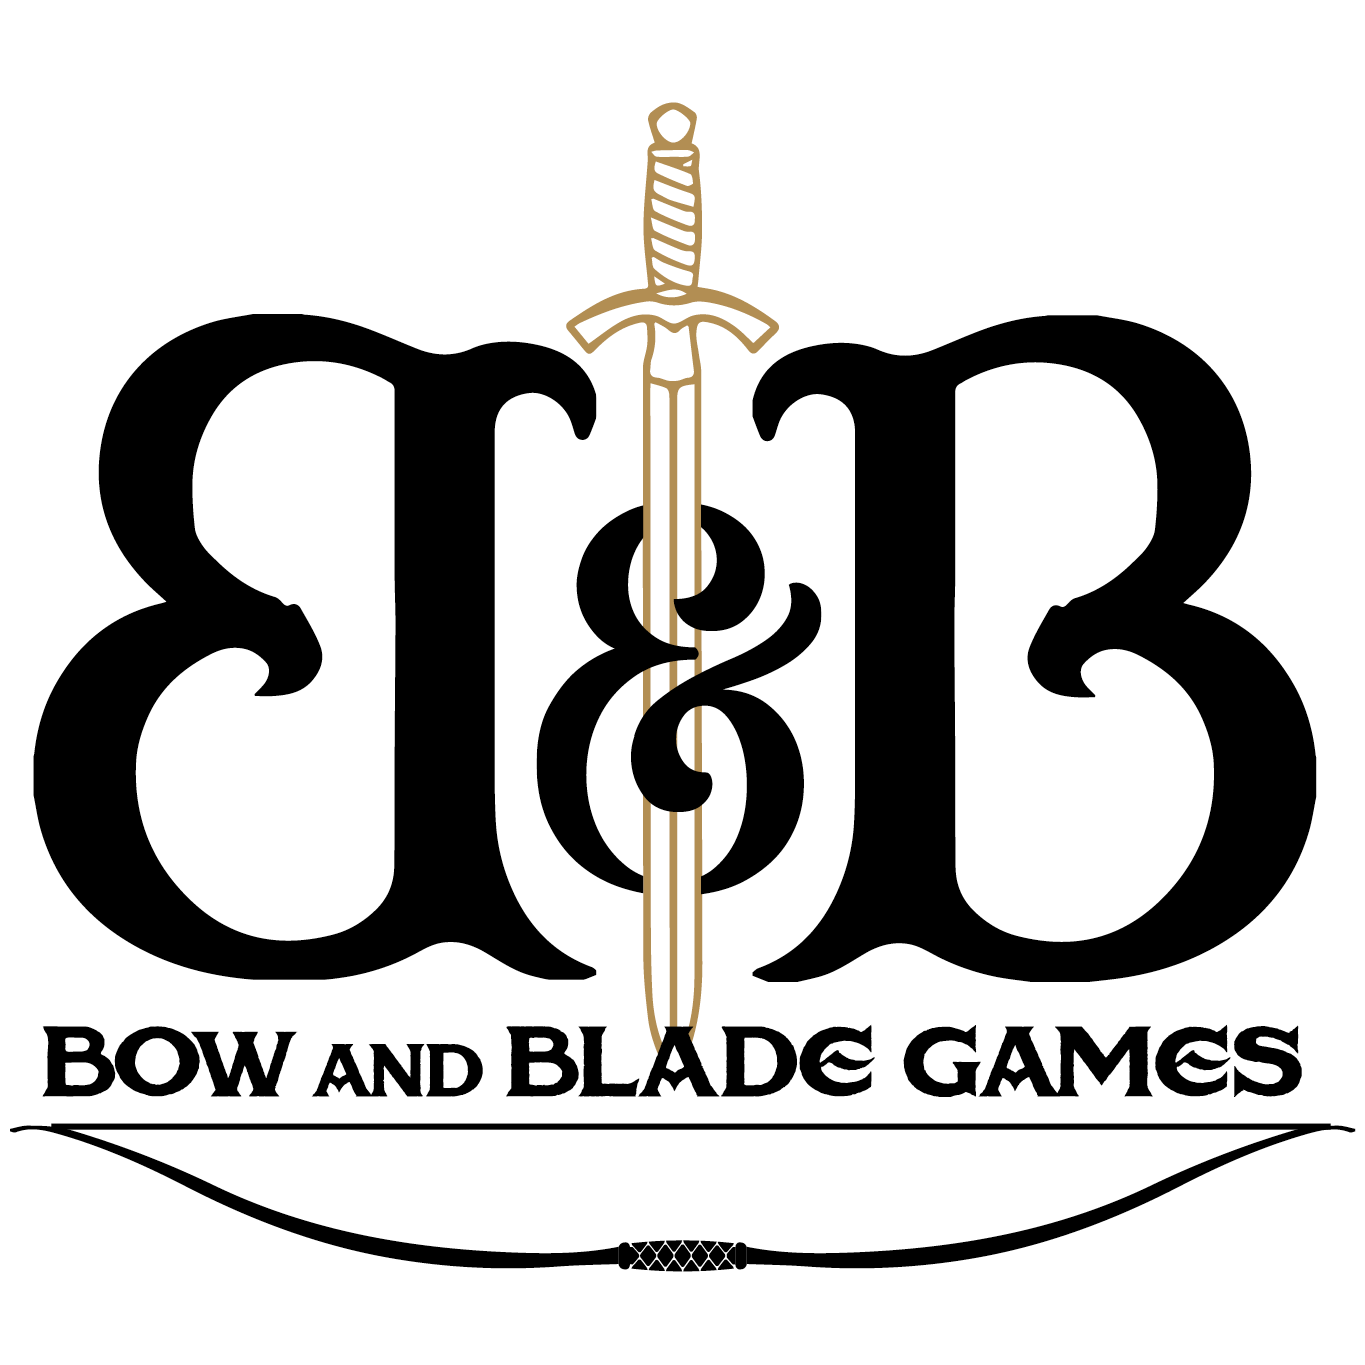 Bow and Blade Games